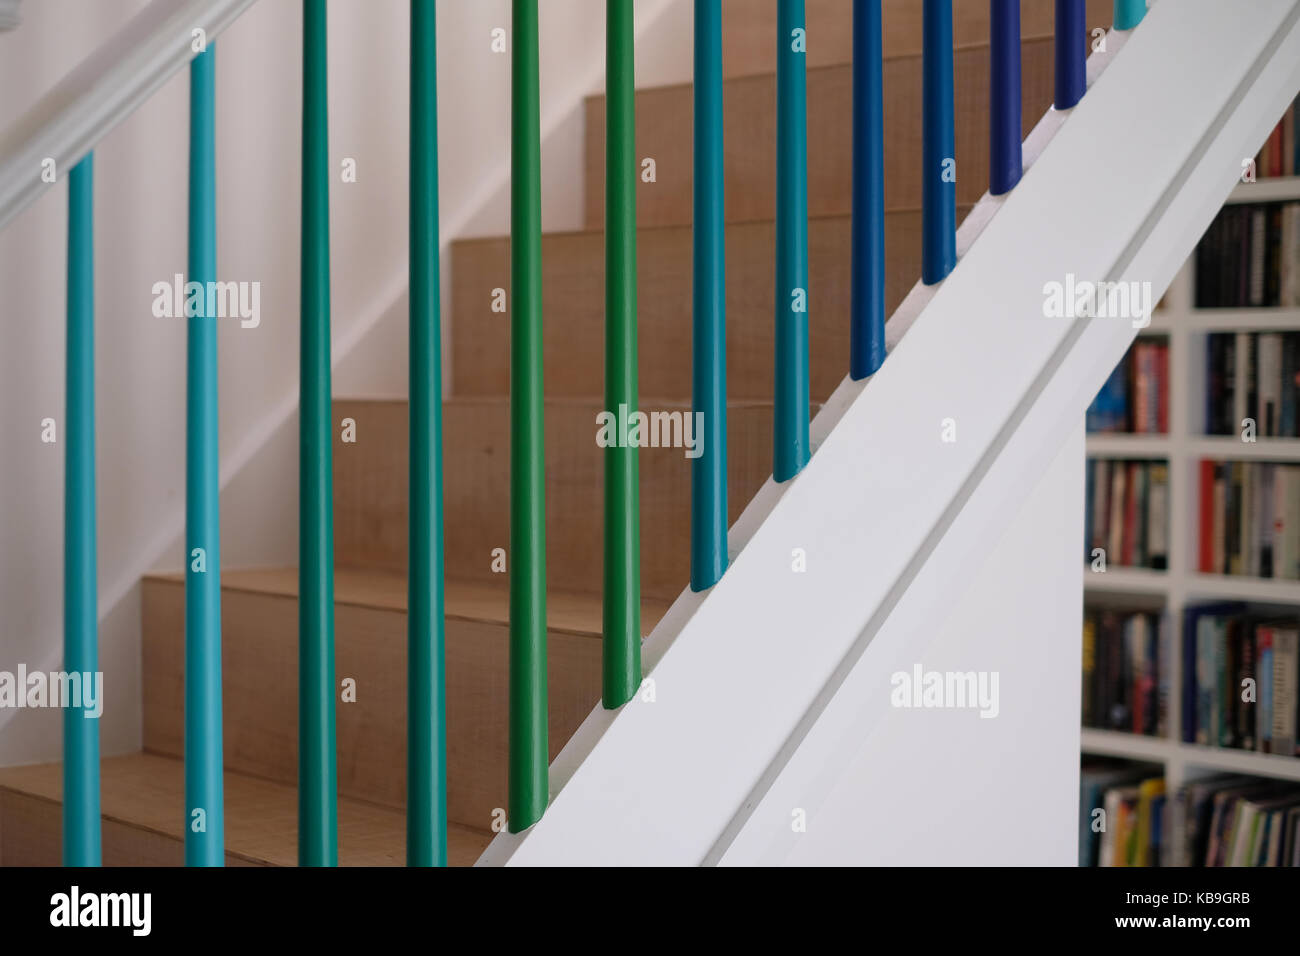 Residential Wooden Staircase With Spindles Painted In Green And Blue Ombre  Colours, And Book Shelves